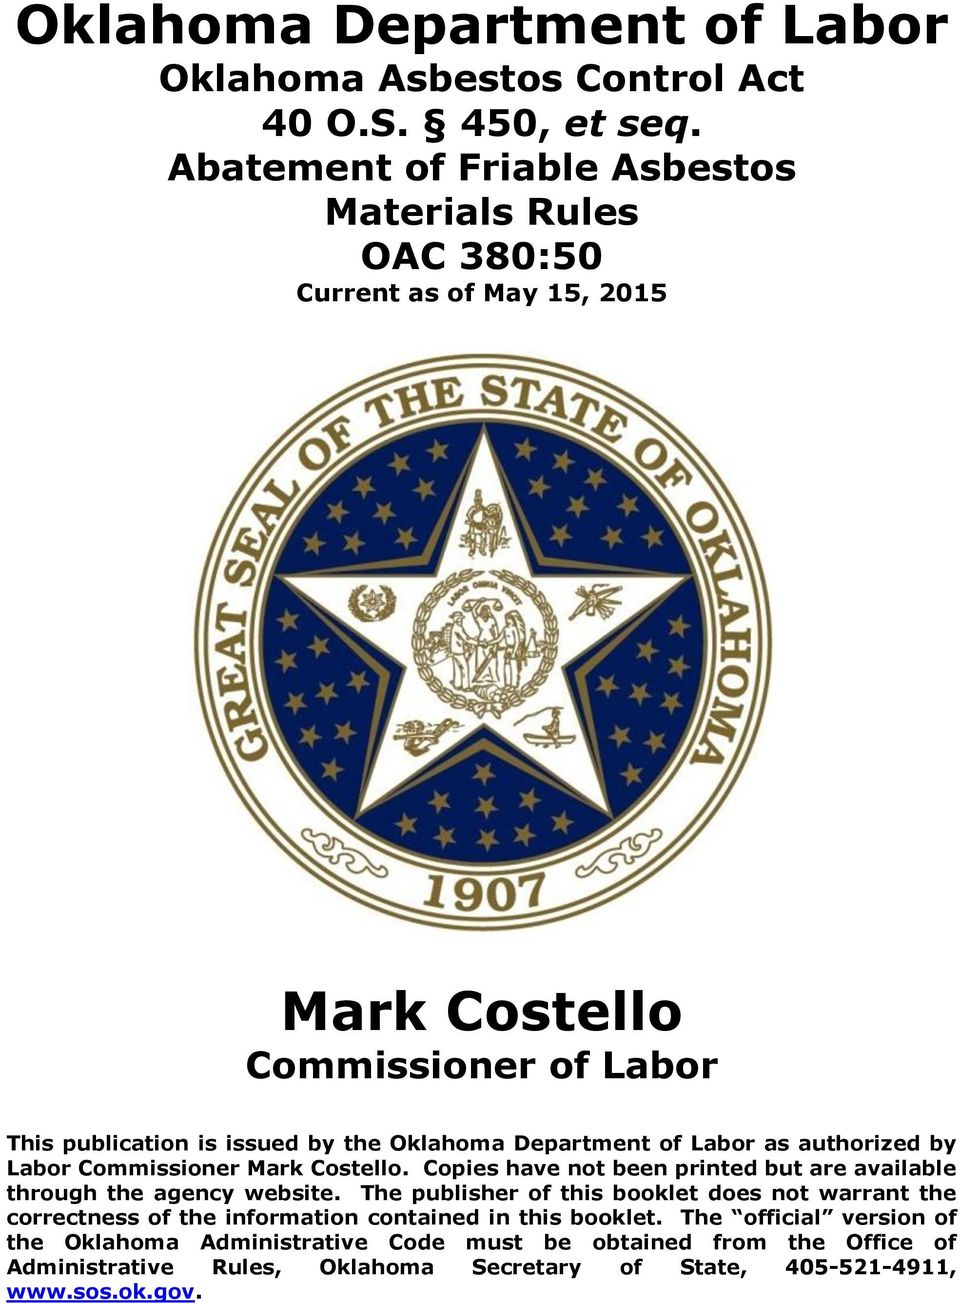 Department of Labor as authorized by Labor Commissioner Mark Costello. Copies have not been printed but are available through the agency website.